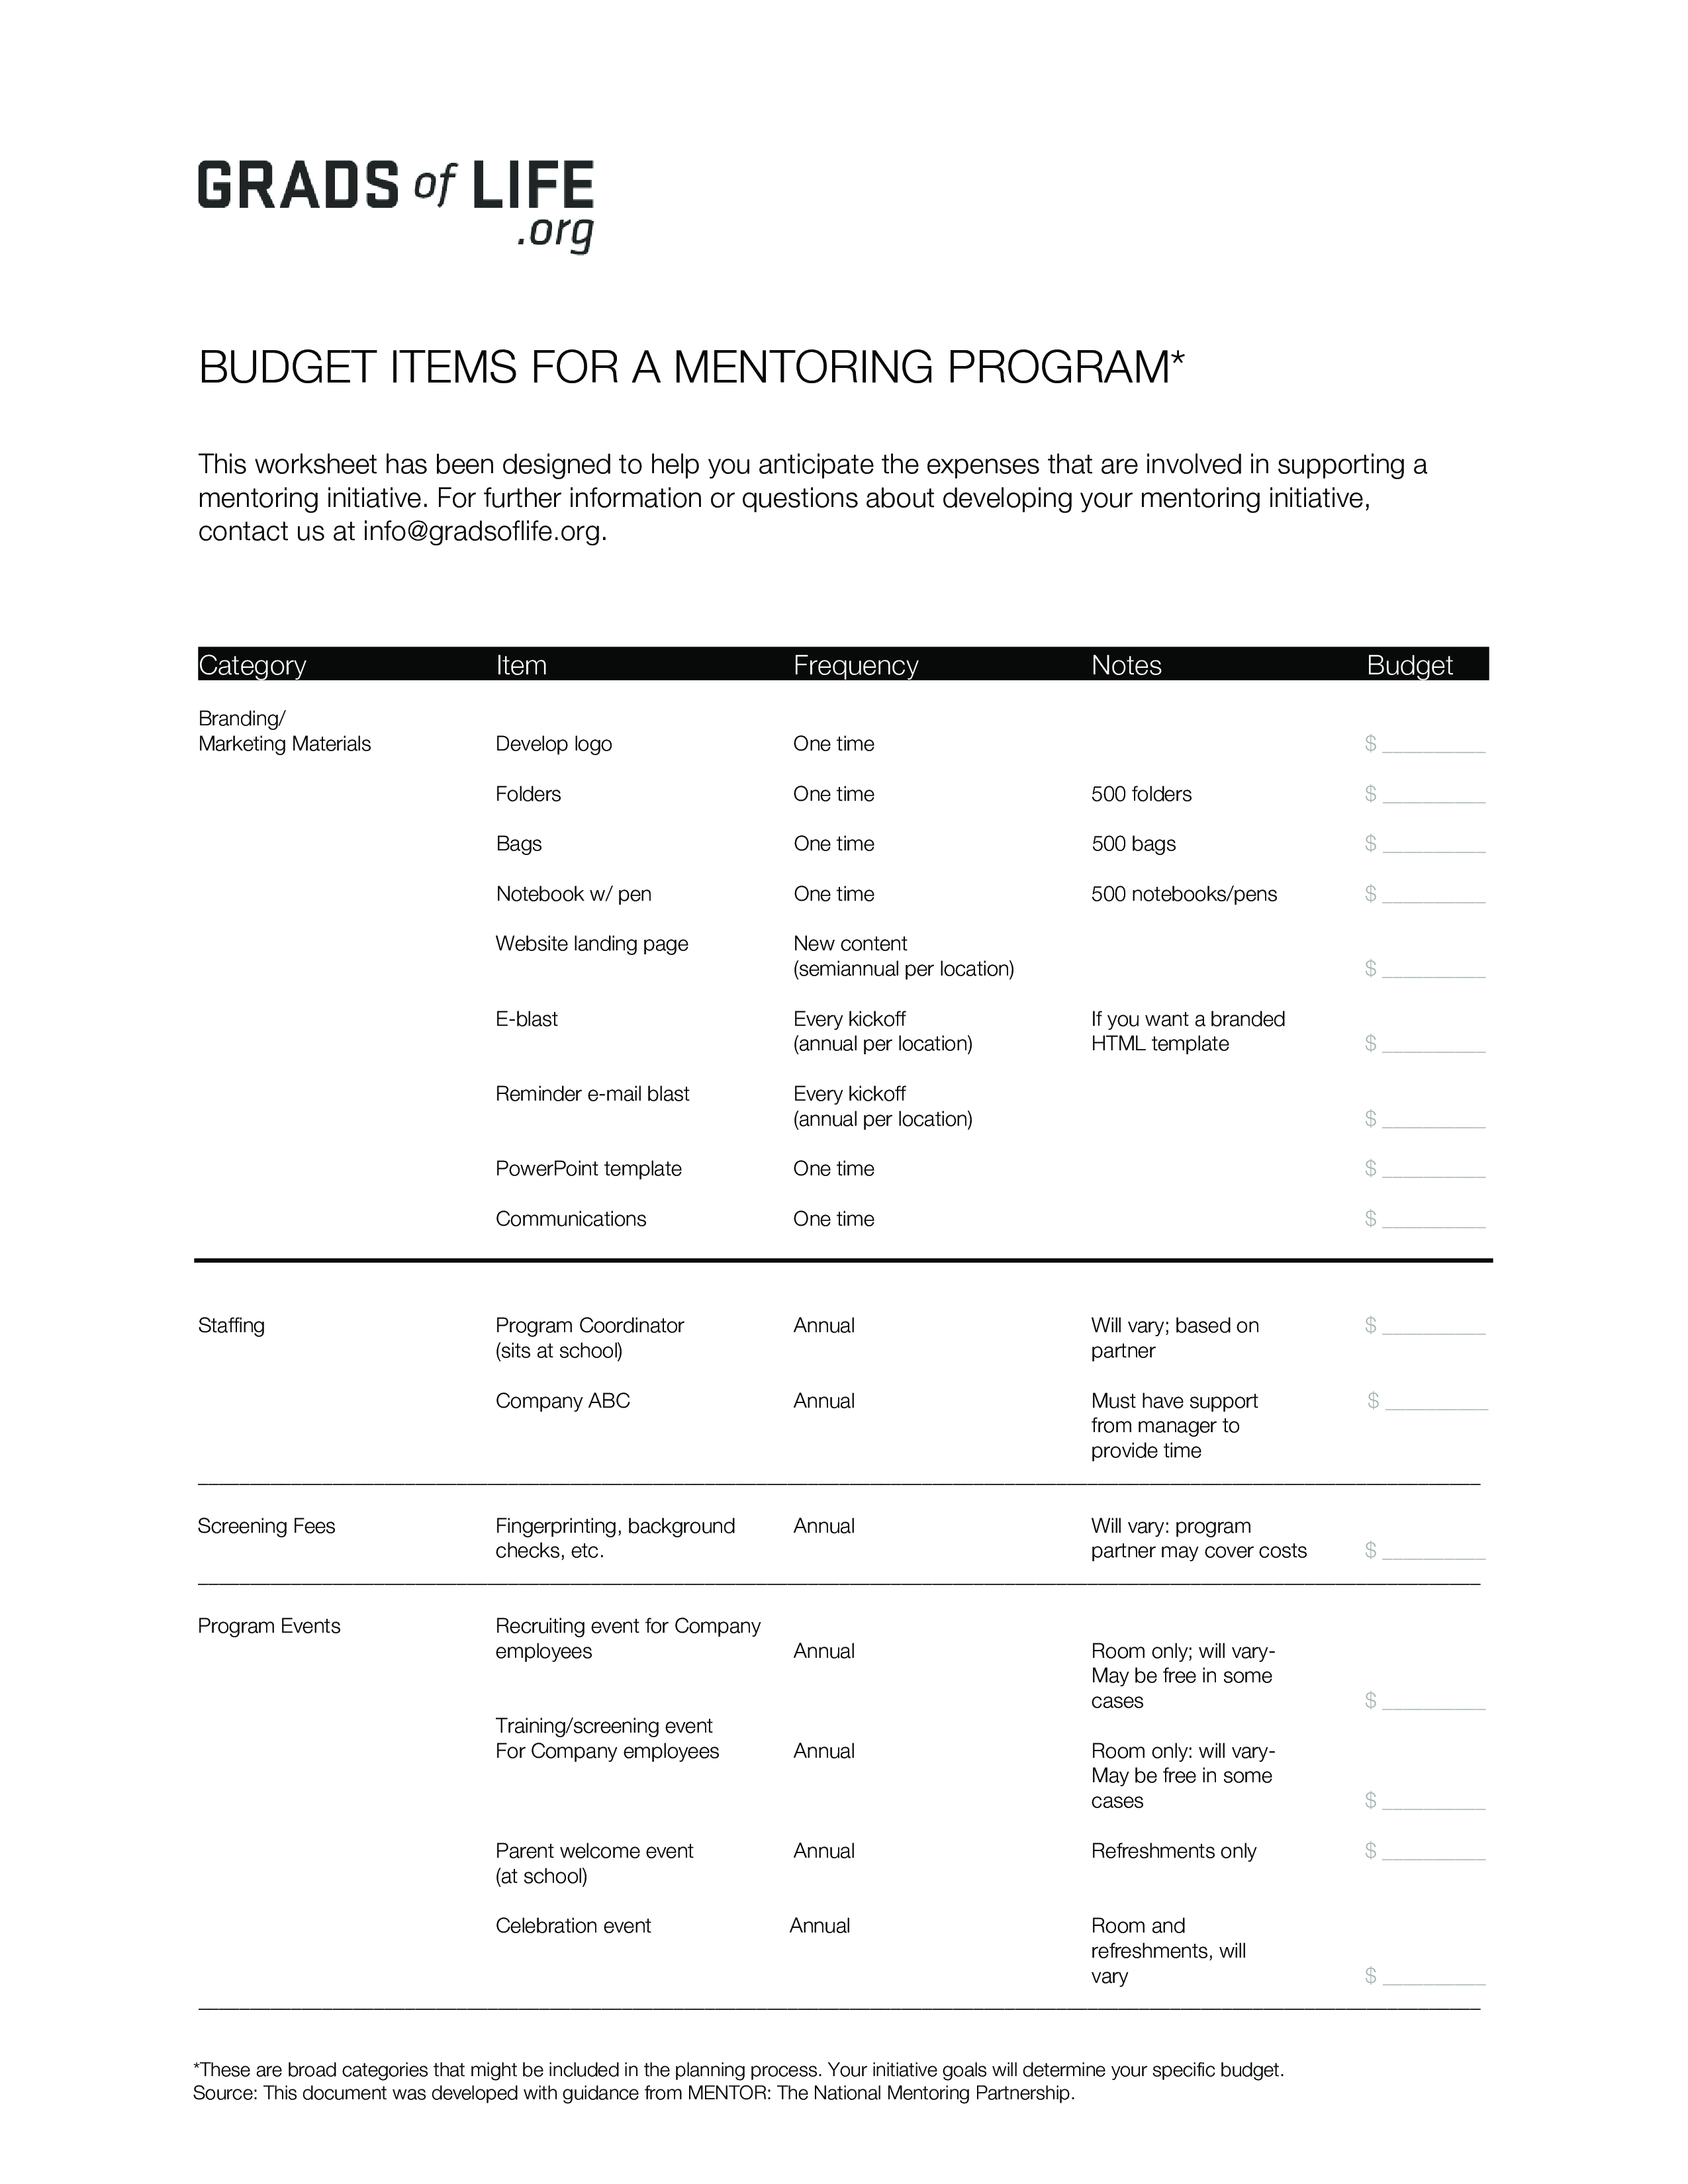 Free mentoring program budget | templates at allbusinesstemplates. Com.